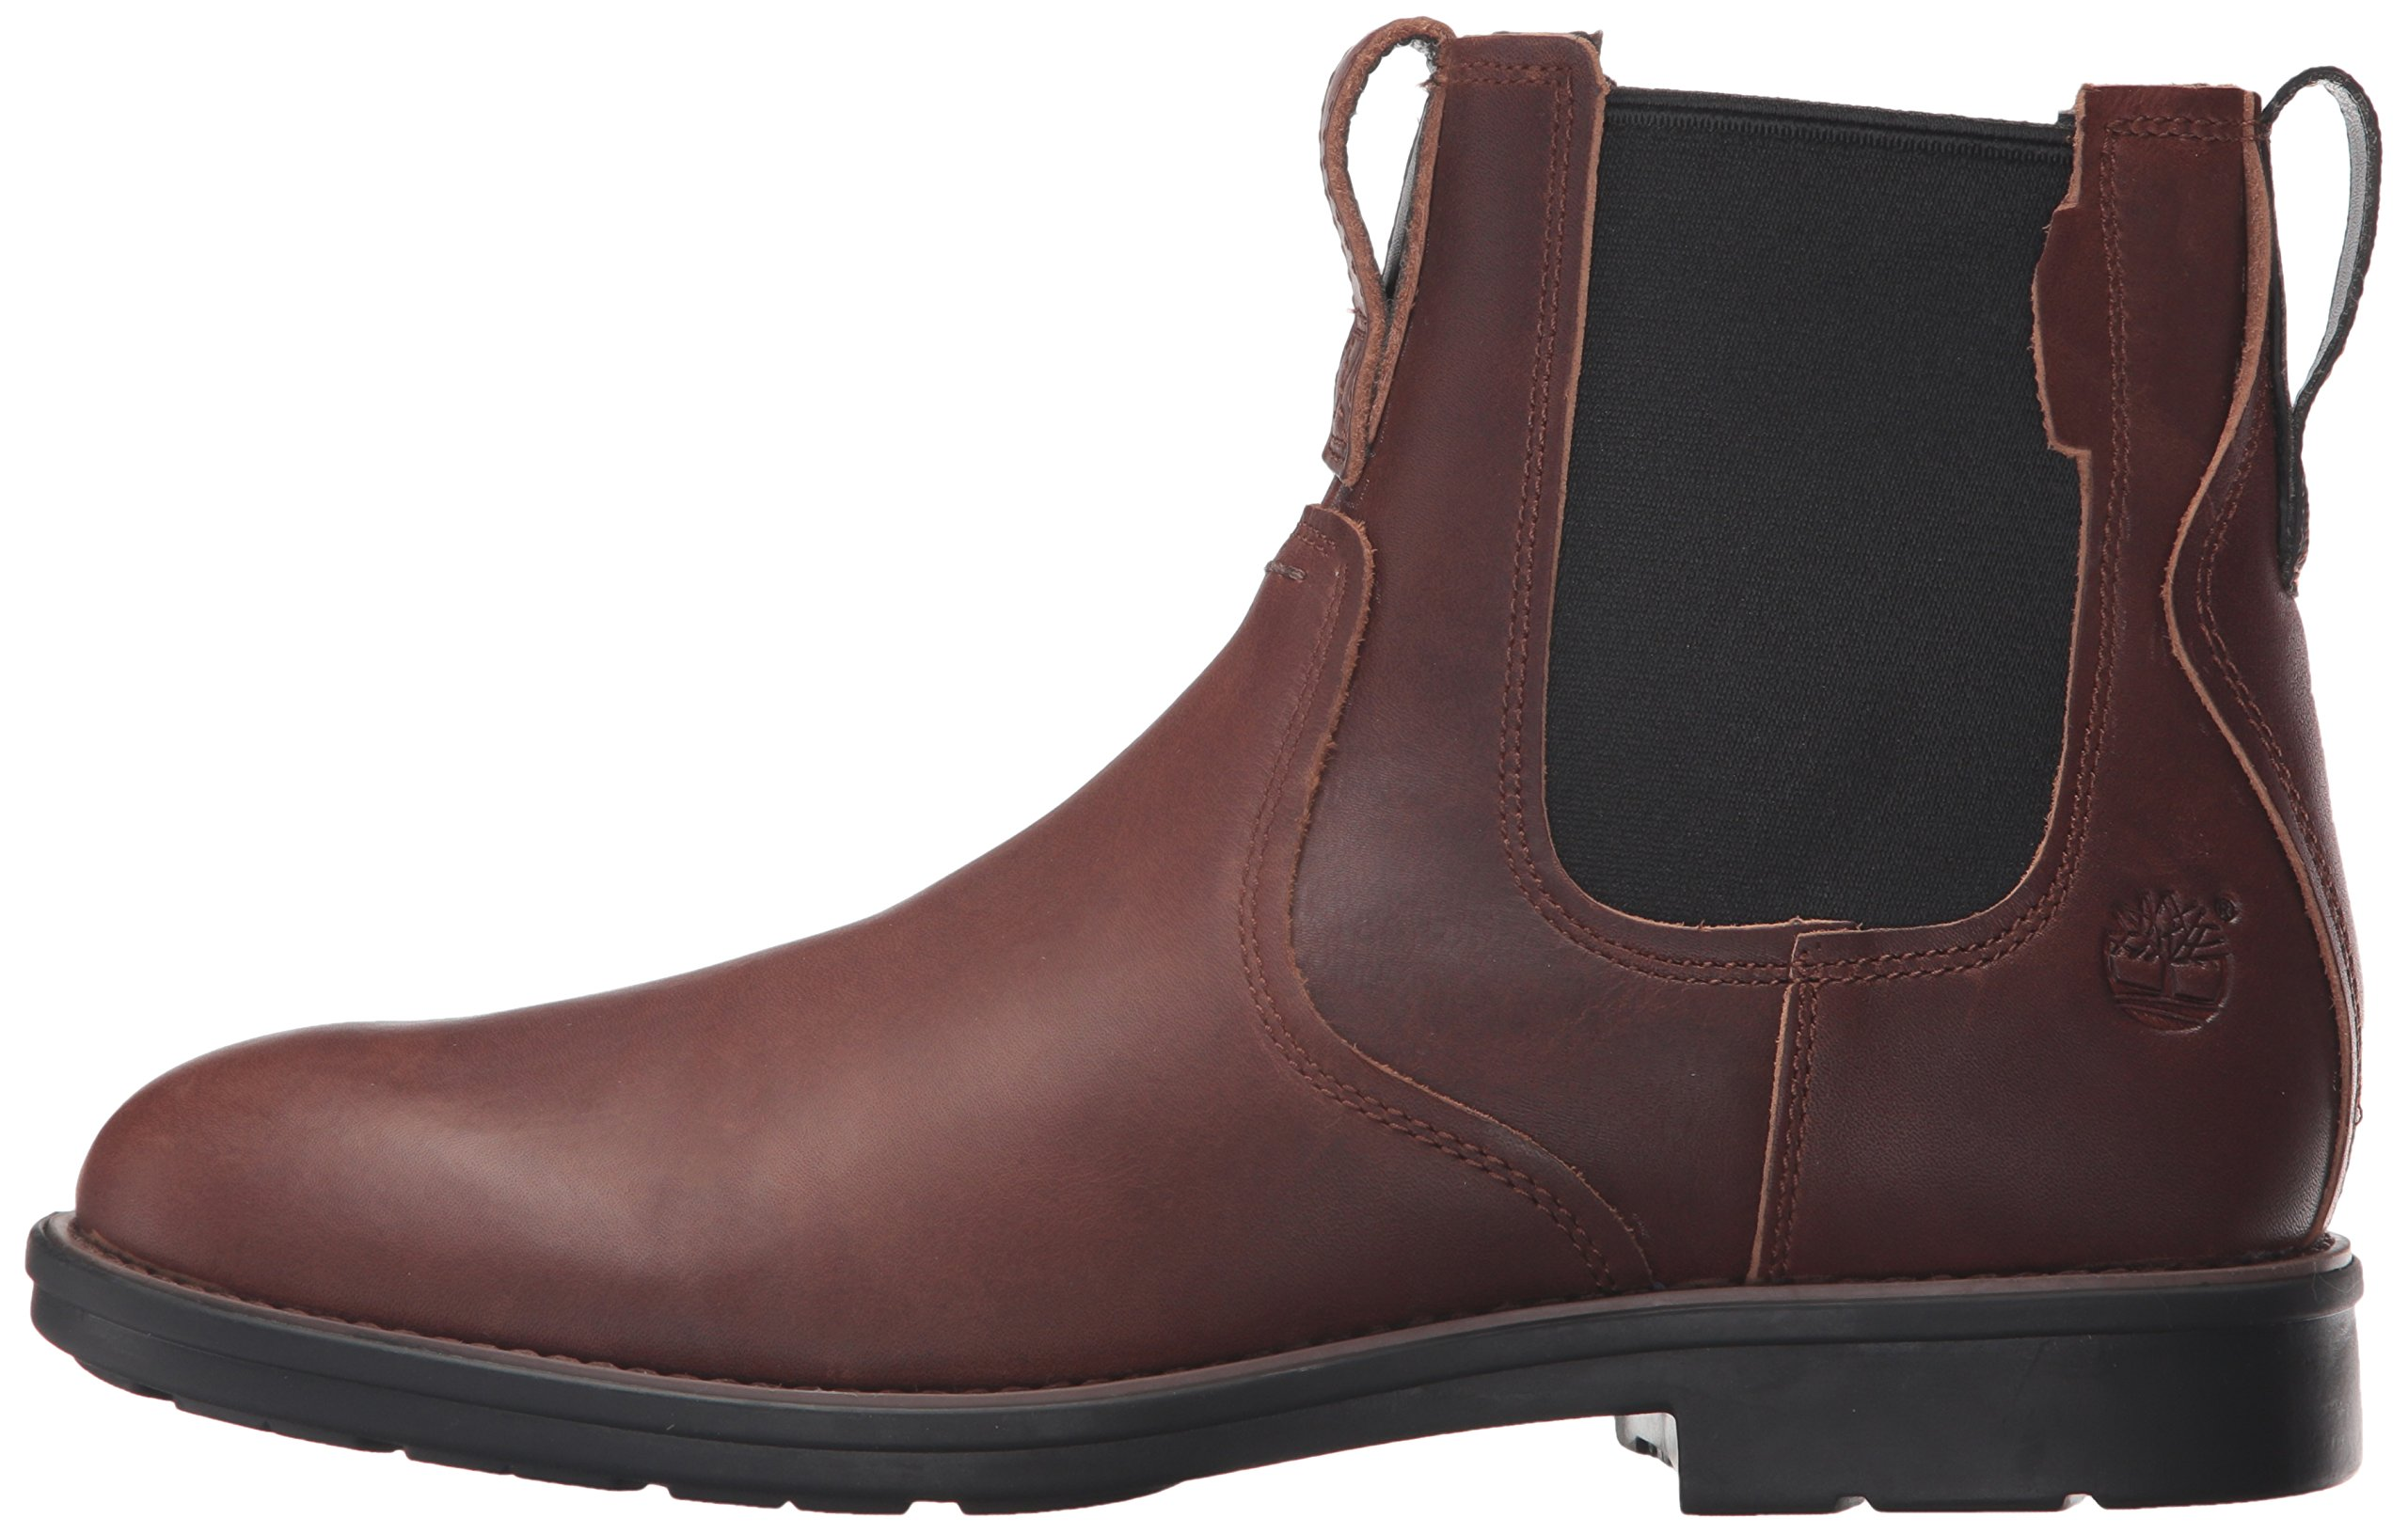 Timberland Men's Carter Notch Chelsea Boot, Dark Brown Full Grain, 14 C US by Timberland (Image #5)